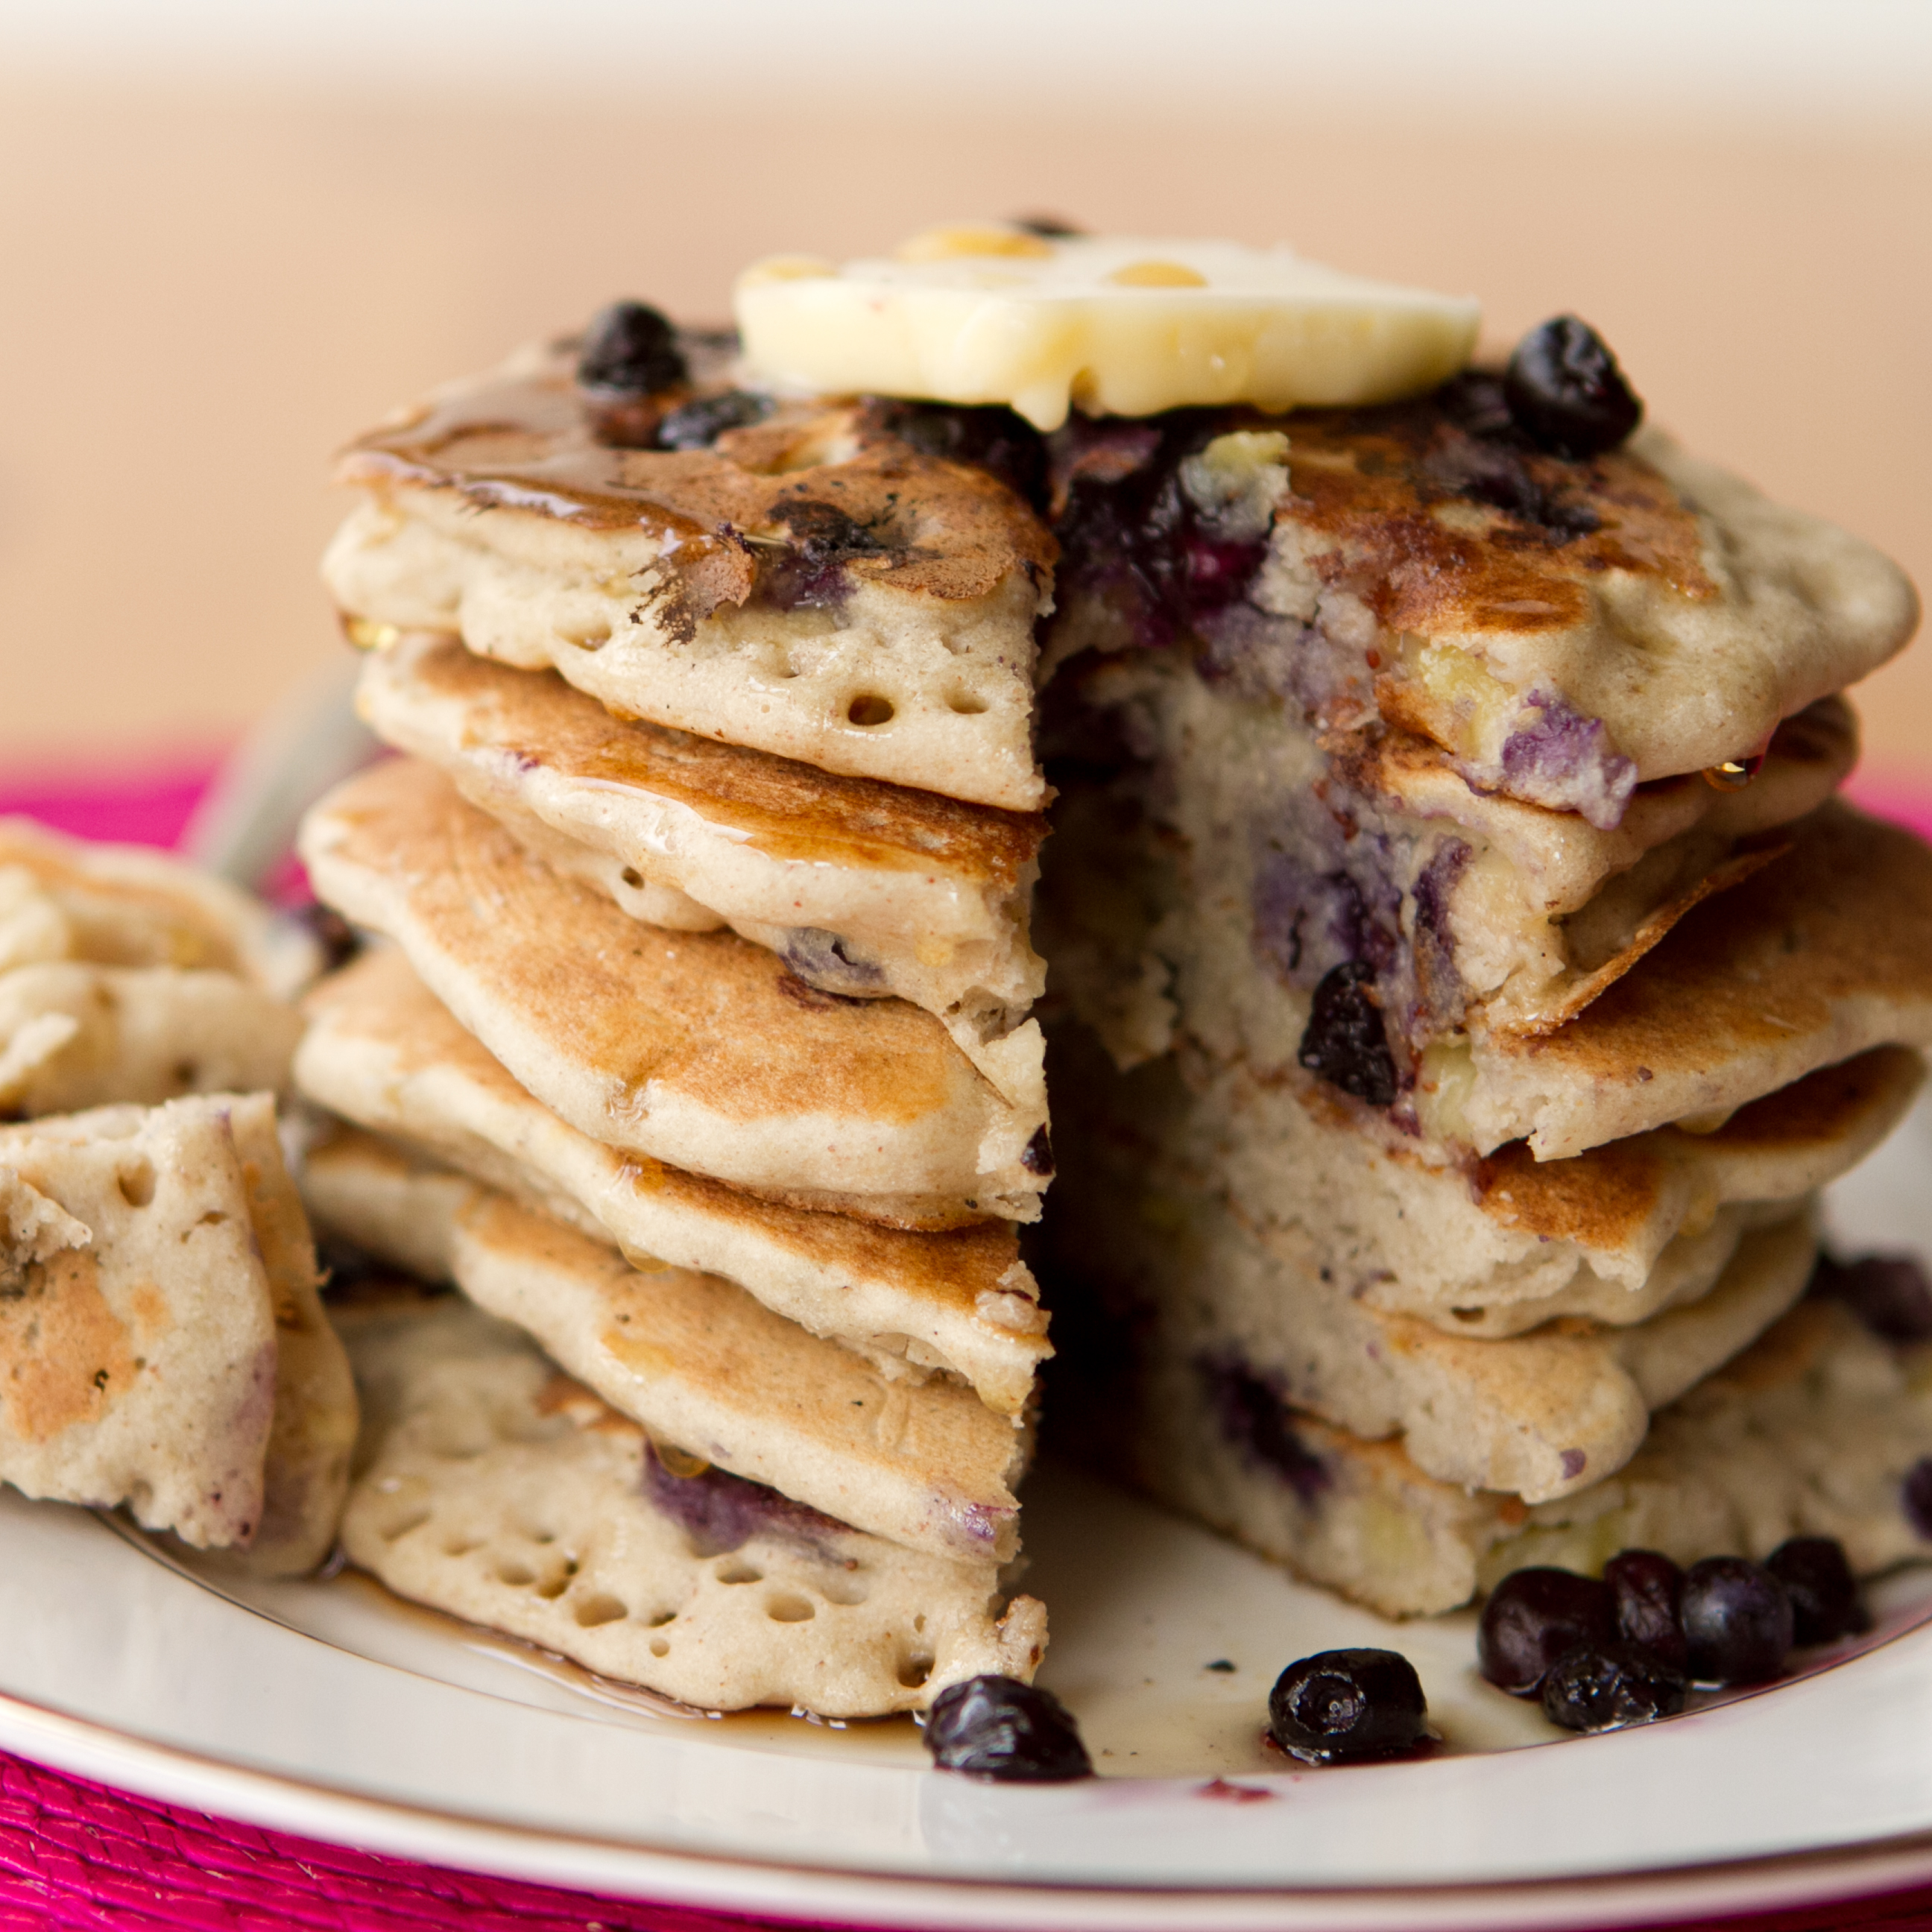 Vegan Gluten Free Vanilla Blueberry Buckwheat Pancakes Oh She Glows